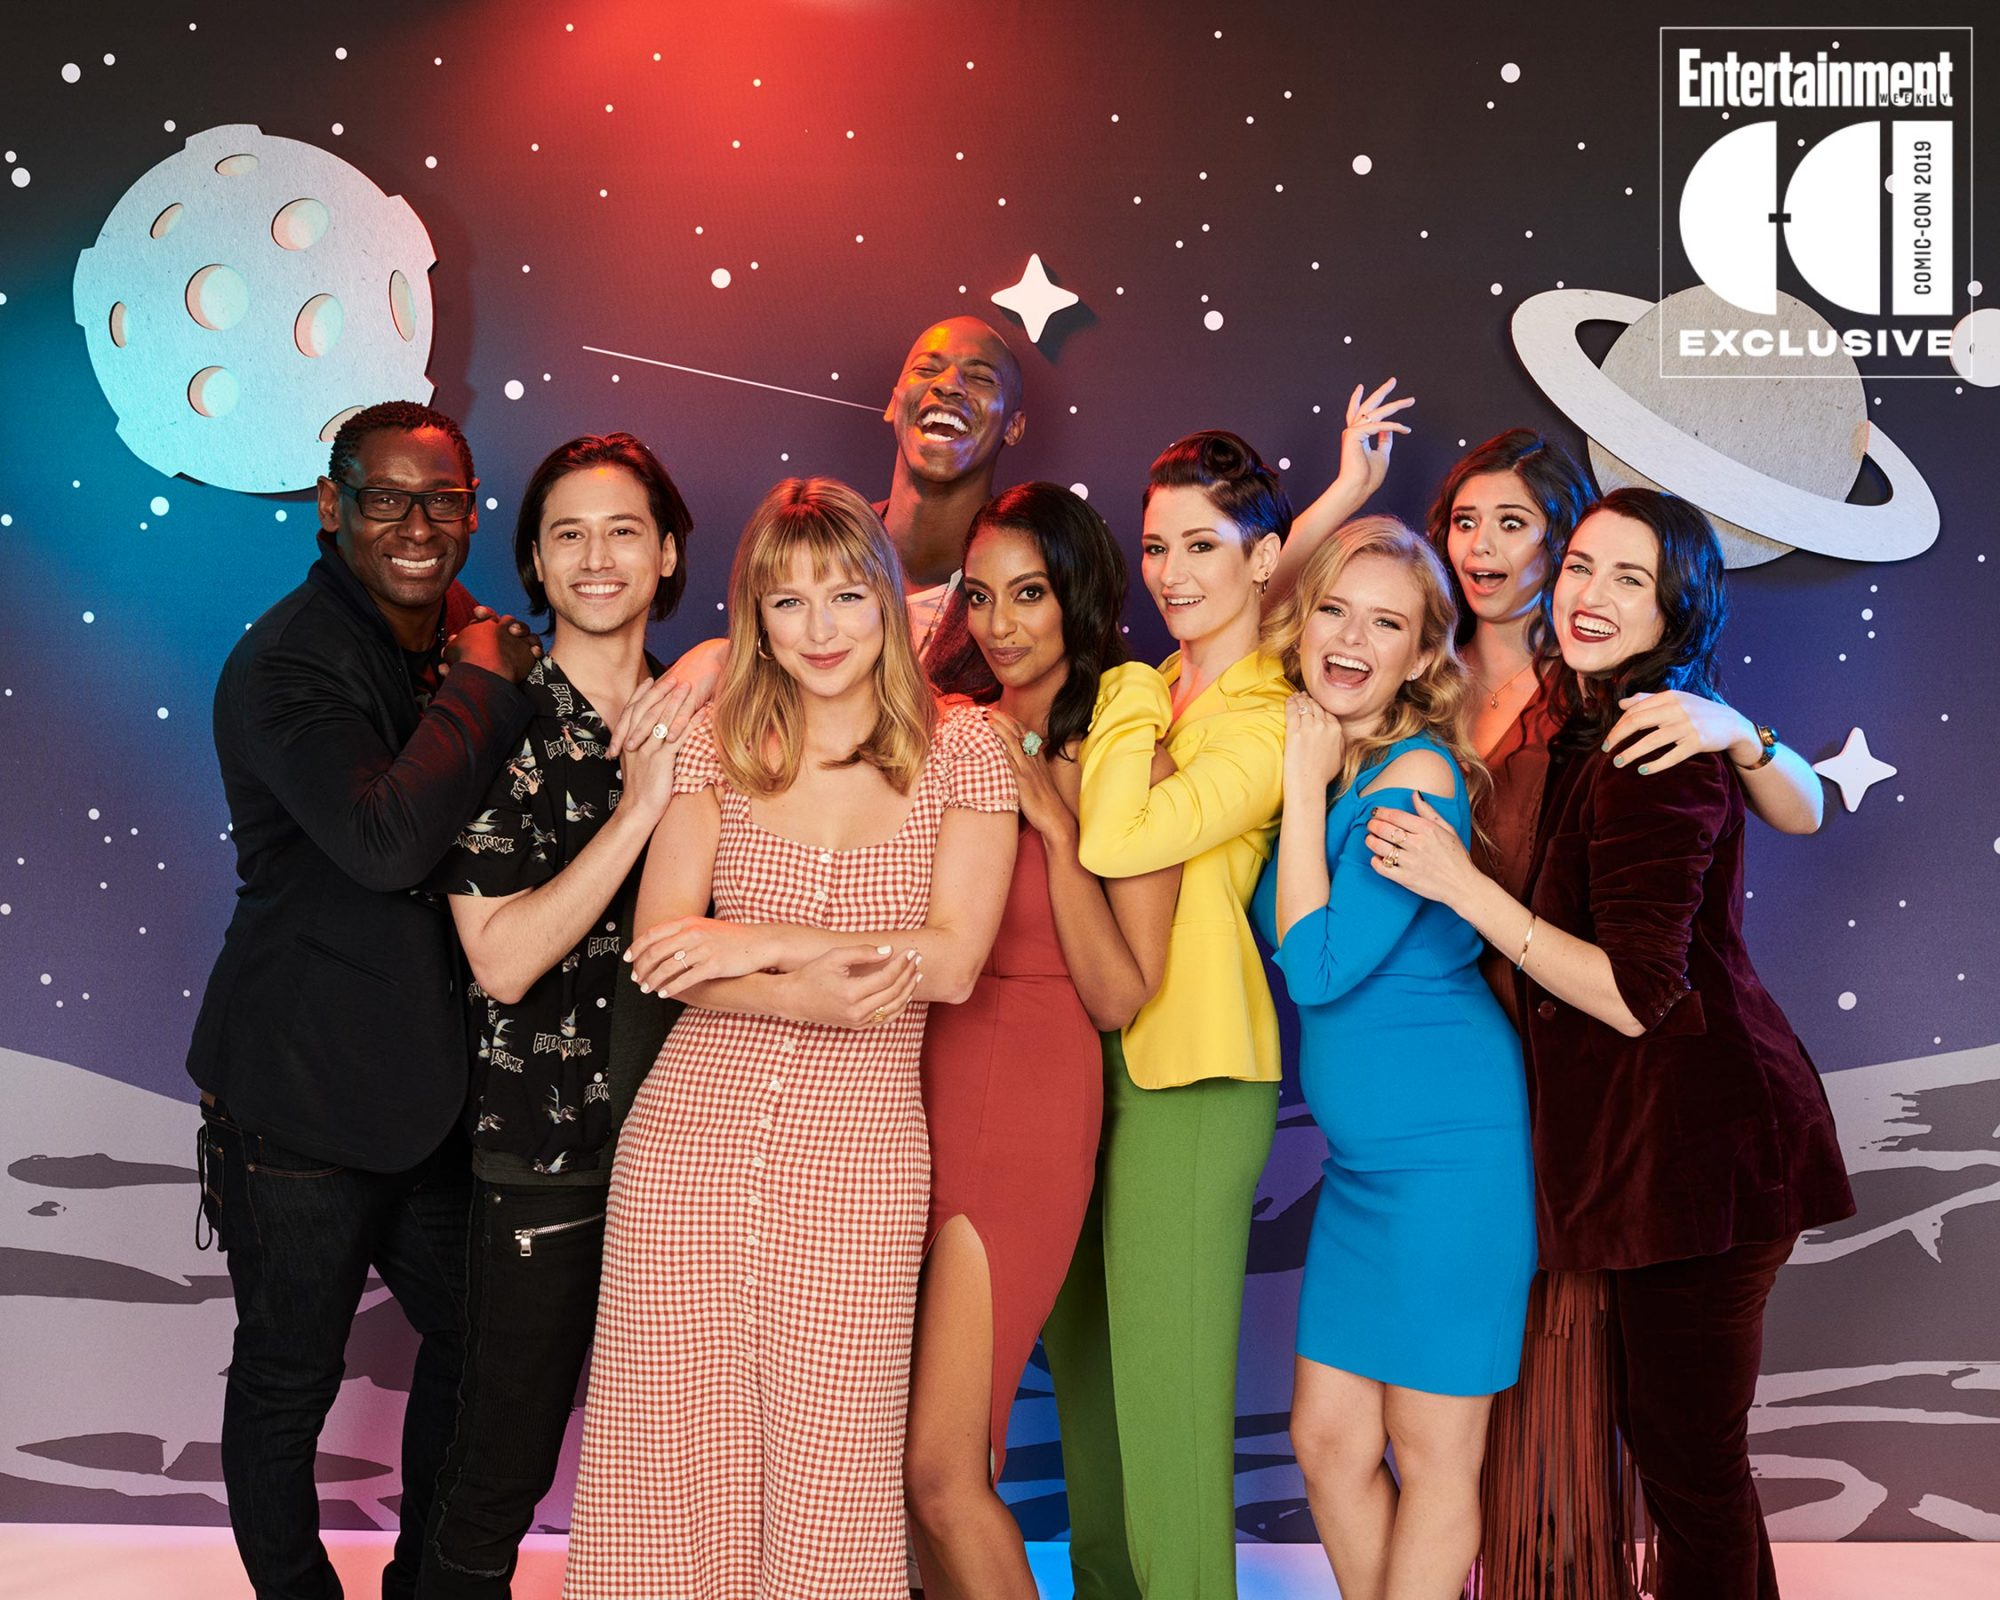 Day 3 - 2019 SDCC - San Diego Comic-Con Cast of Supergirl photographed in the Entertainment Weekly portrait studio during the 2019 San Diego Comic Con on July 20th, 2019 in San Diego, California. Photographed by: Eric Ray Davidson Pictured: David Harewood, Jesse Rath, Melissa Benoist, Mehcad Brooks, Azie Tesfai, Chyler Leigh, Andrea Brooks, Nicole Maines, Film/Show: Supergirl